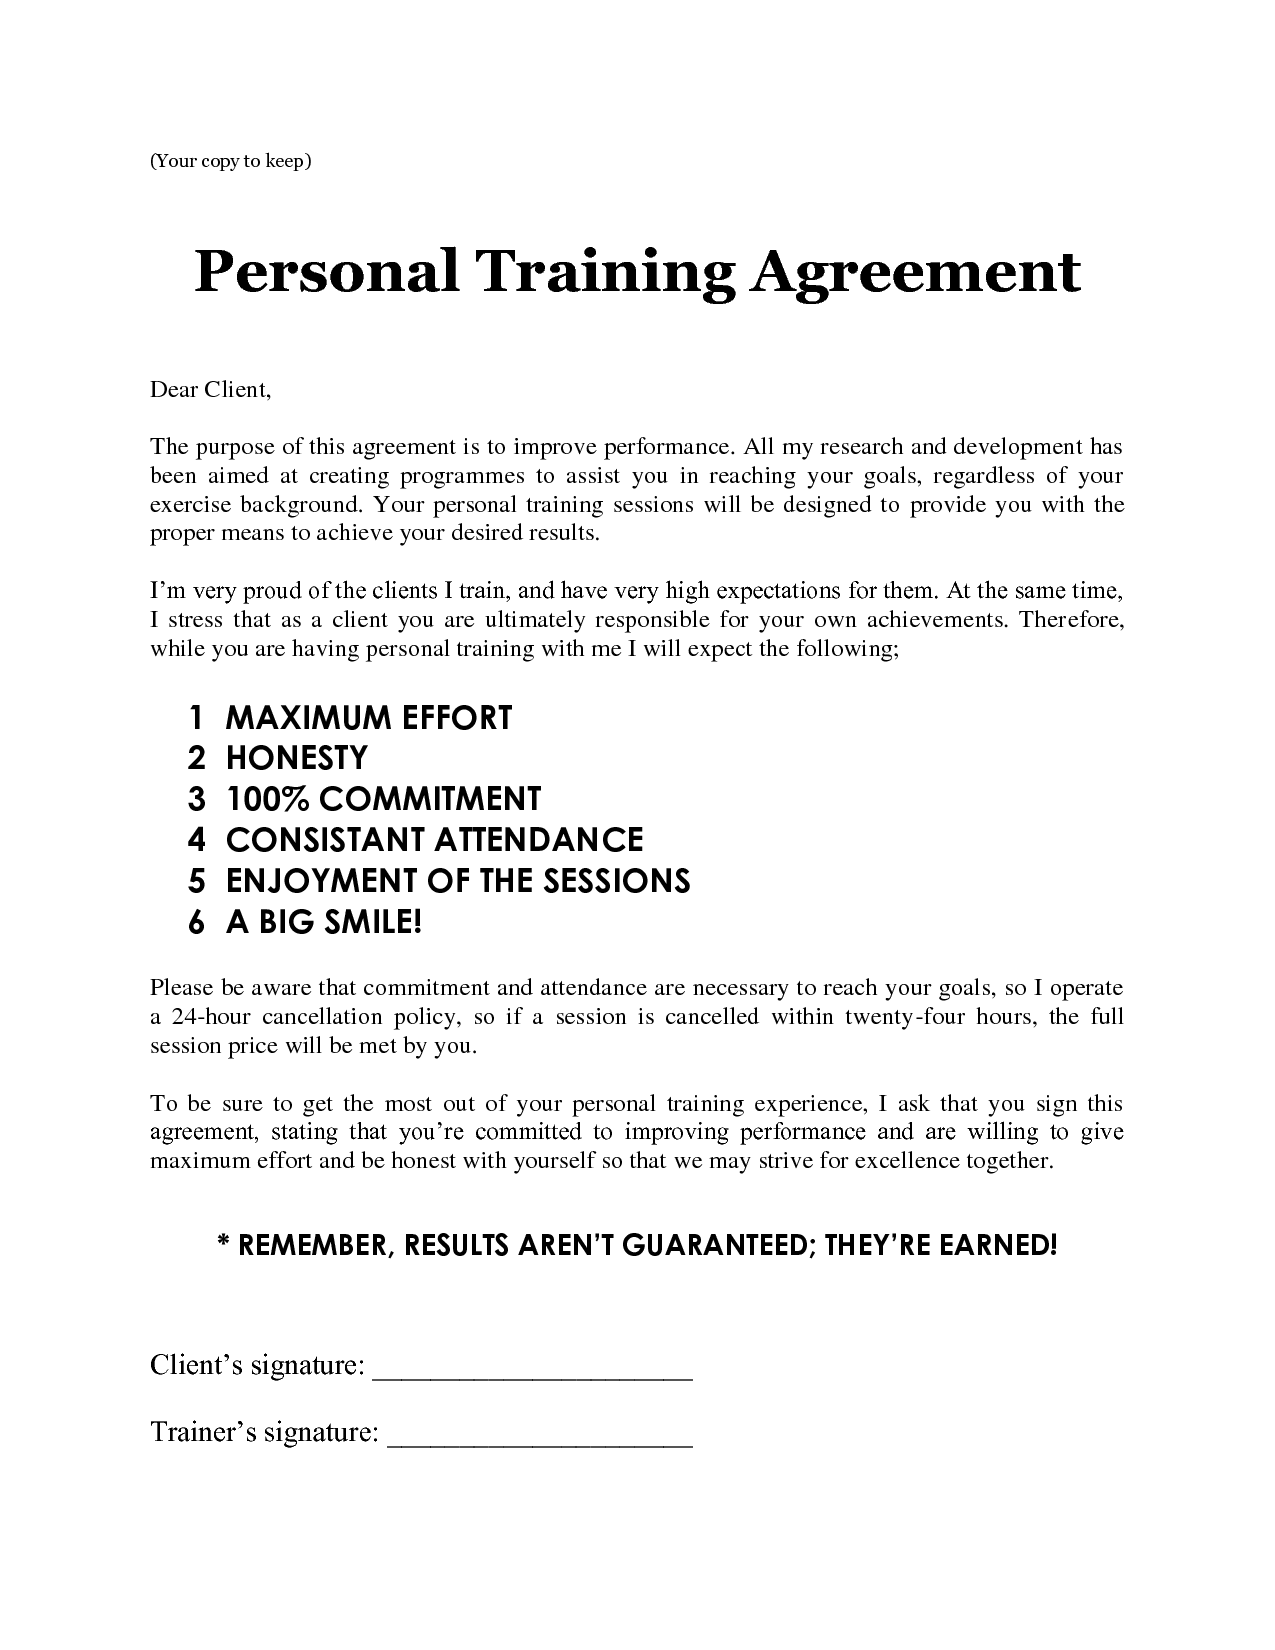 Personal Training Sheets Personal Training Agreement  Fitness